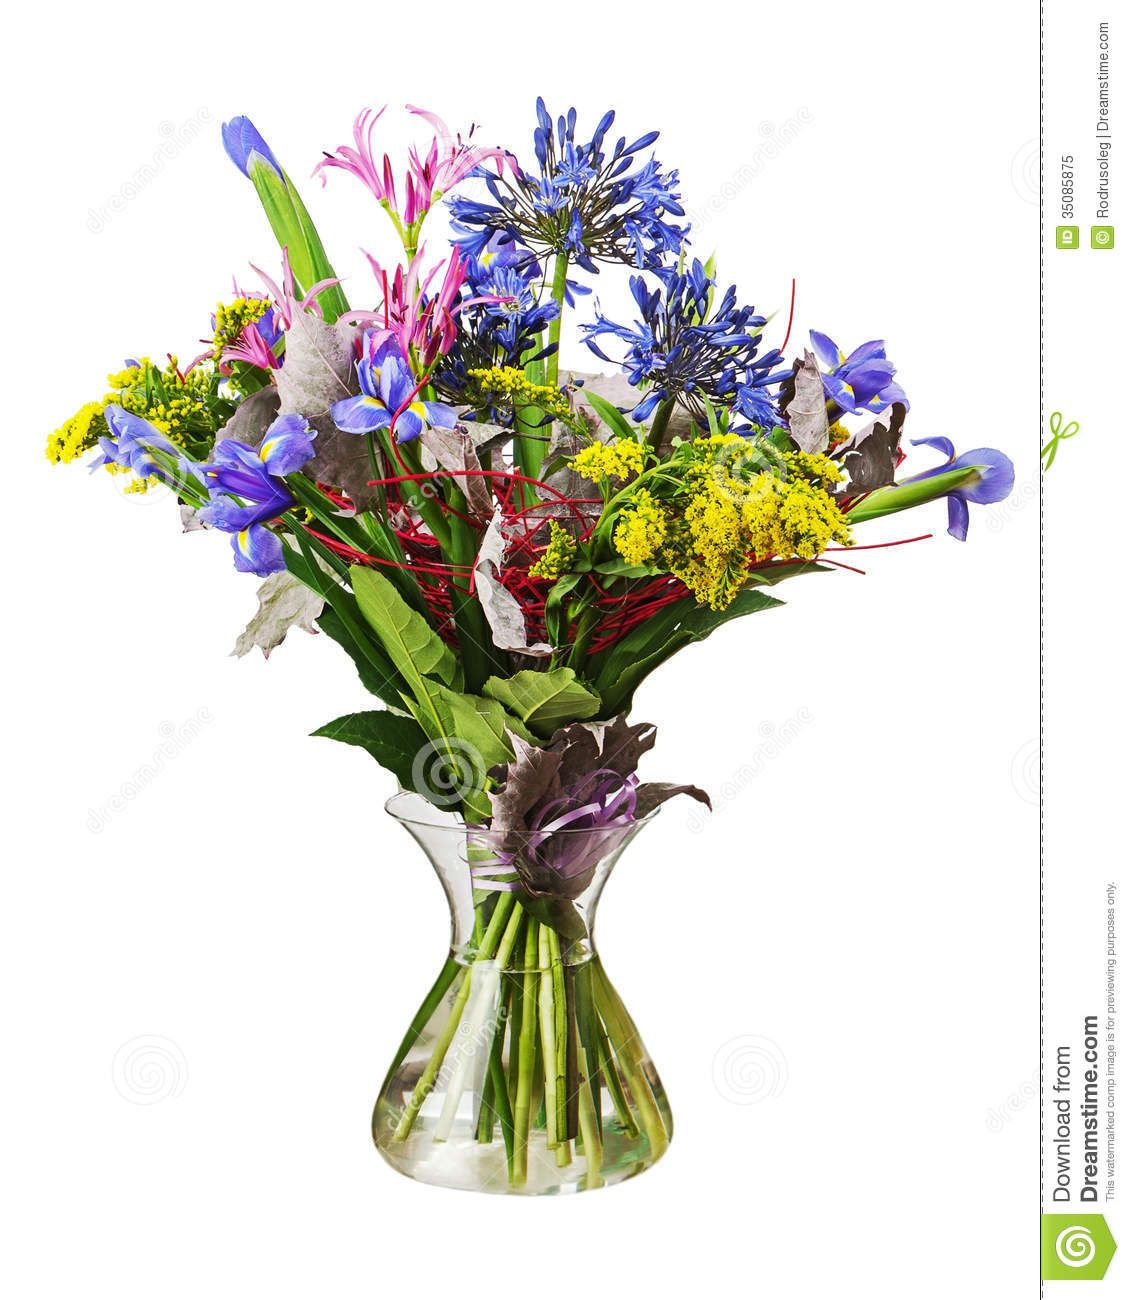 241 & colorful flowers in vases | Stock Photo: Colorful flower bouquet ...